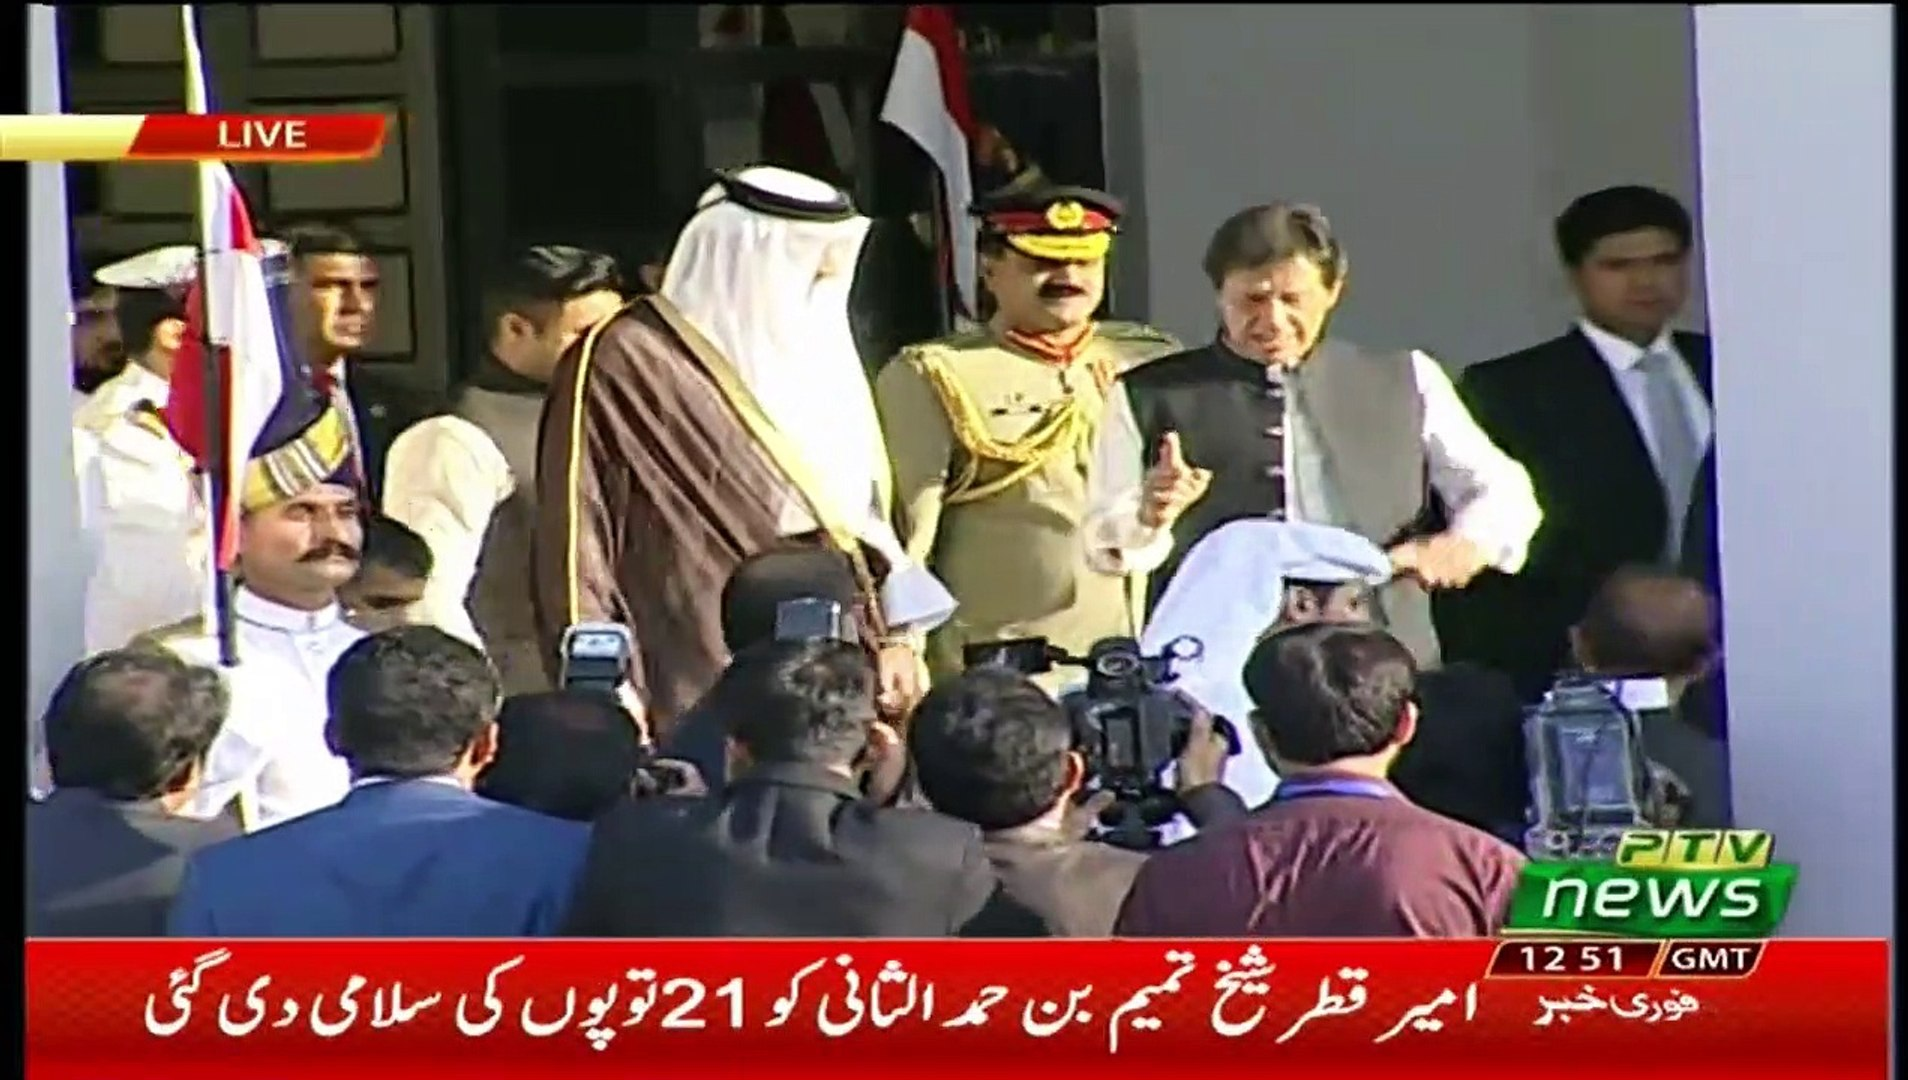 Prime Minister Imran Khan Drive The Ameer Qatar From The Airport